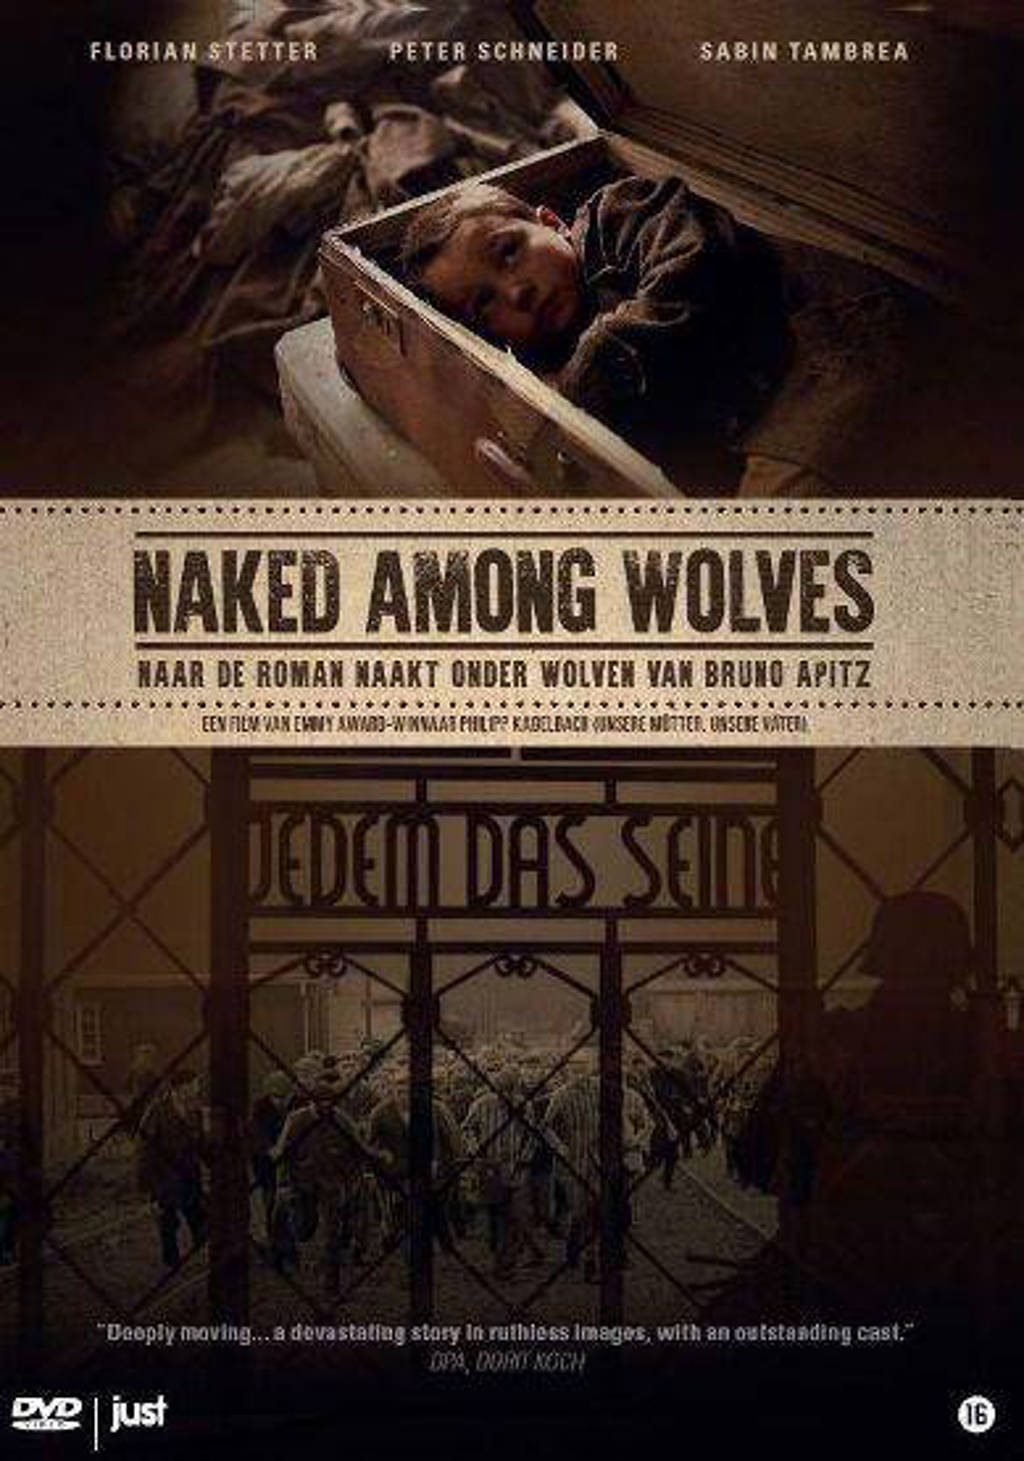 Naked among wolves (DVD)